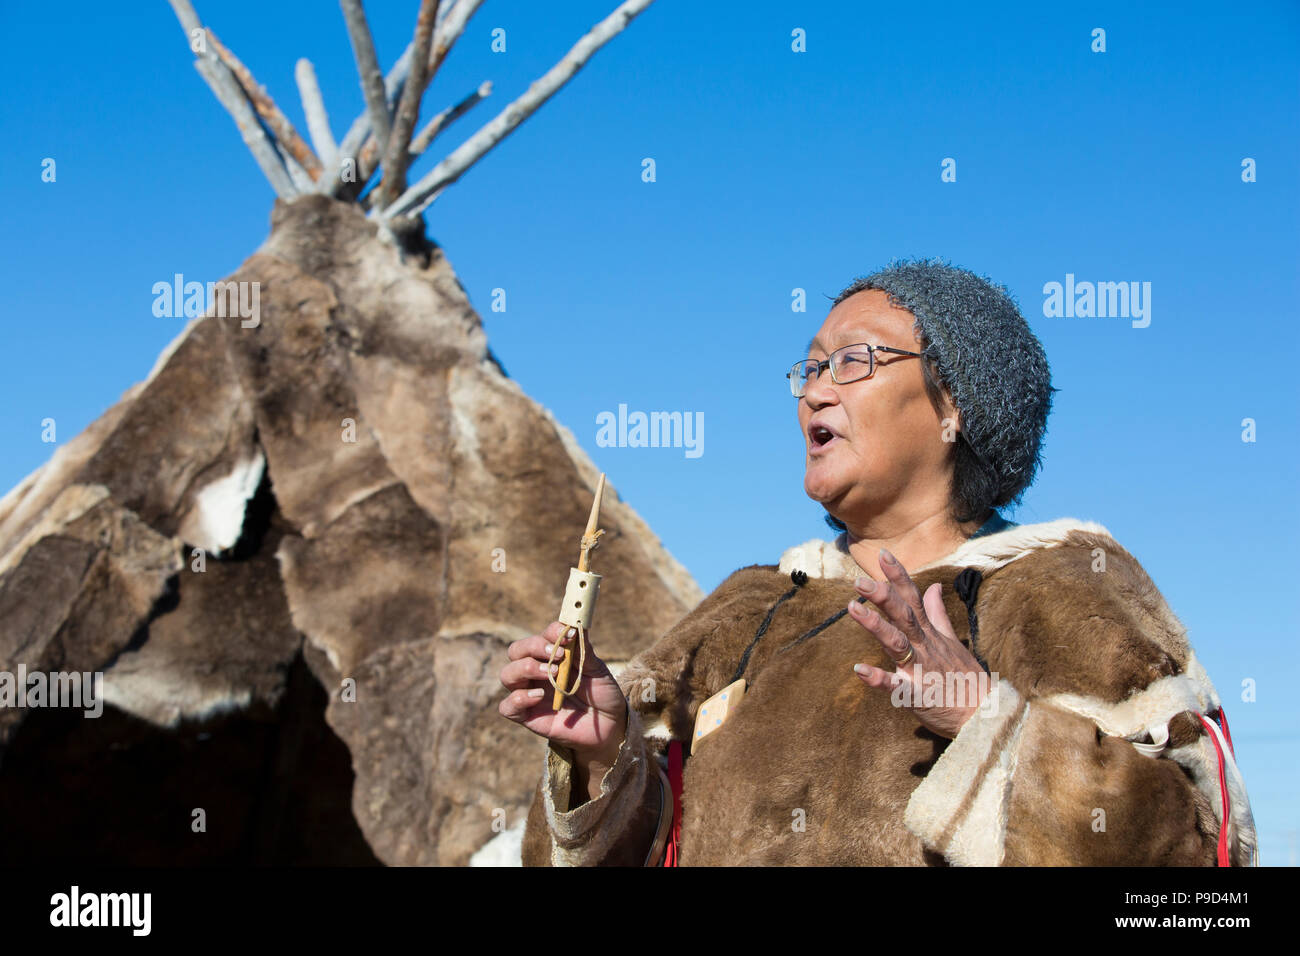 Canada, Nunavut, Hudson Bay, Kivalliq, Arviat, local woman demonstrates historic tools used by inuit. - Stock Image